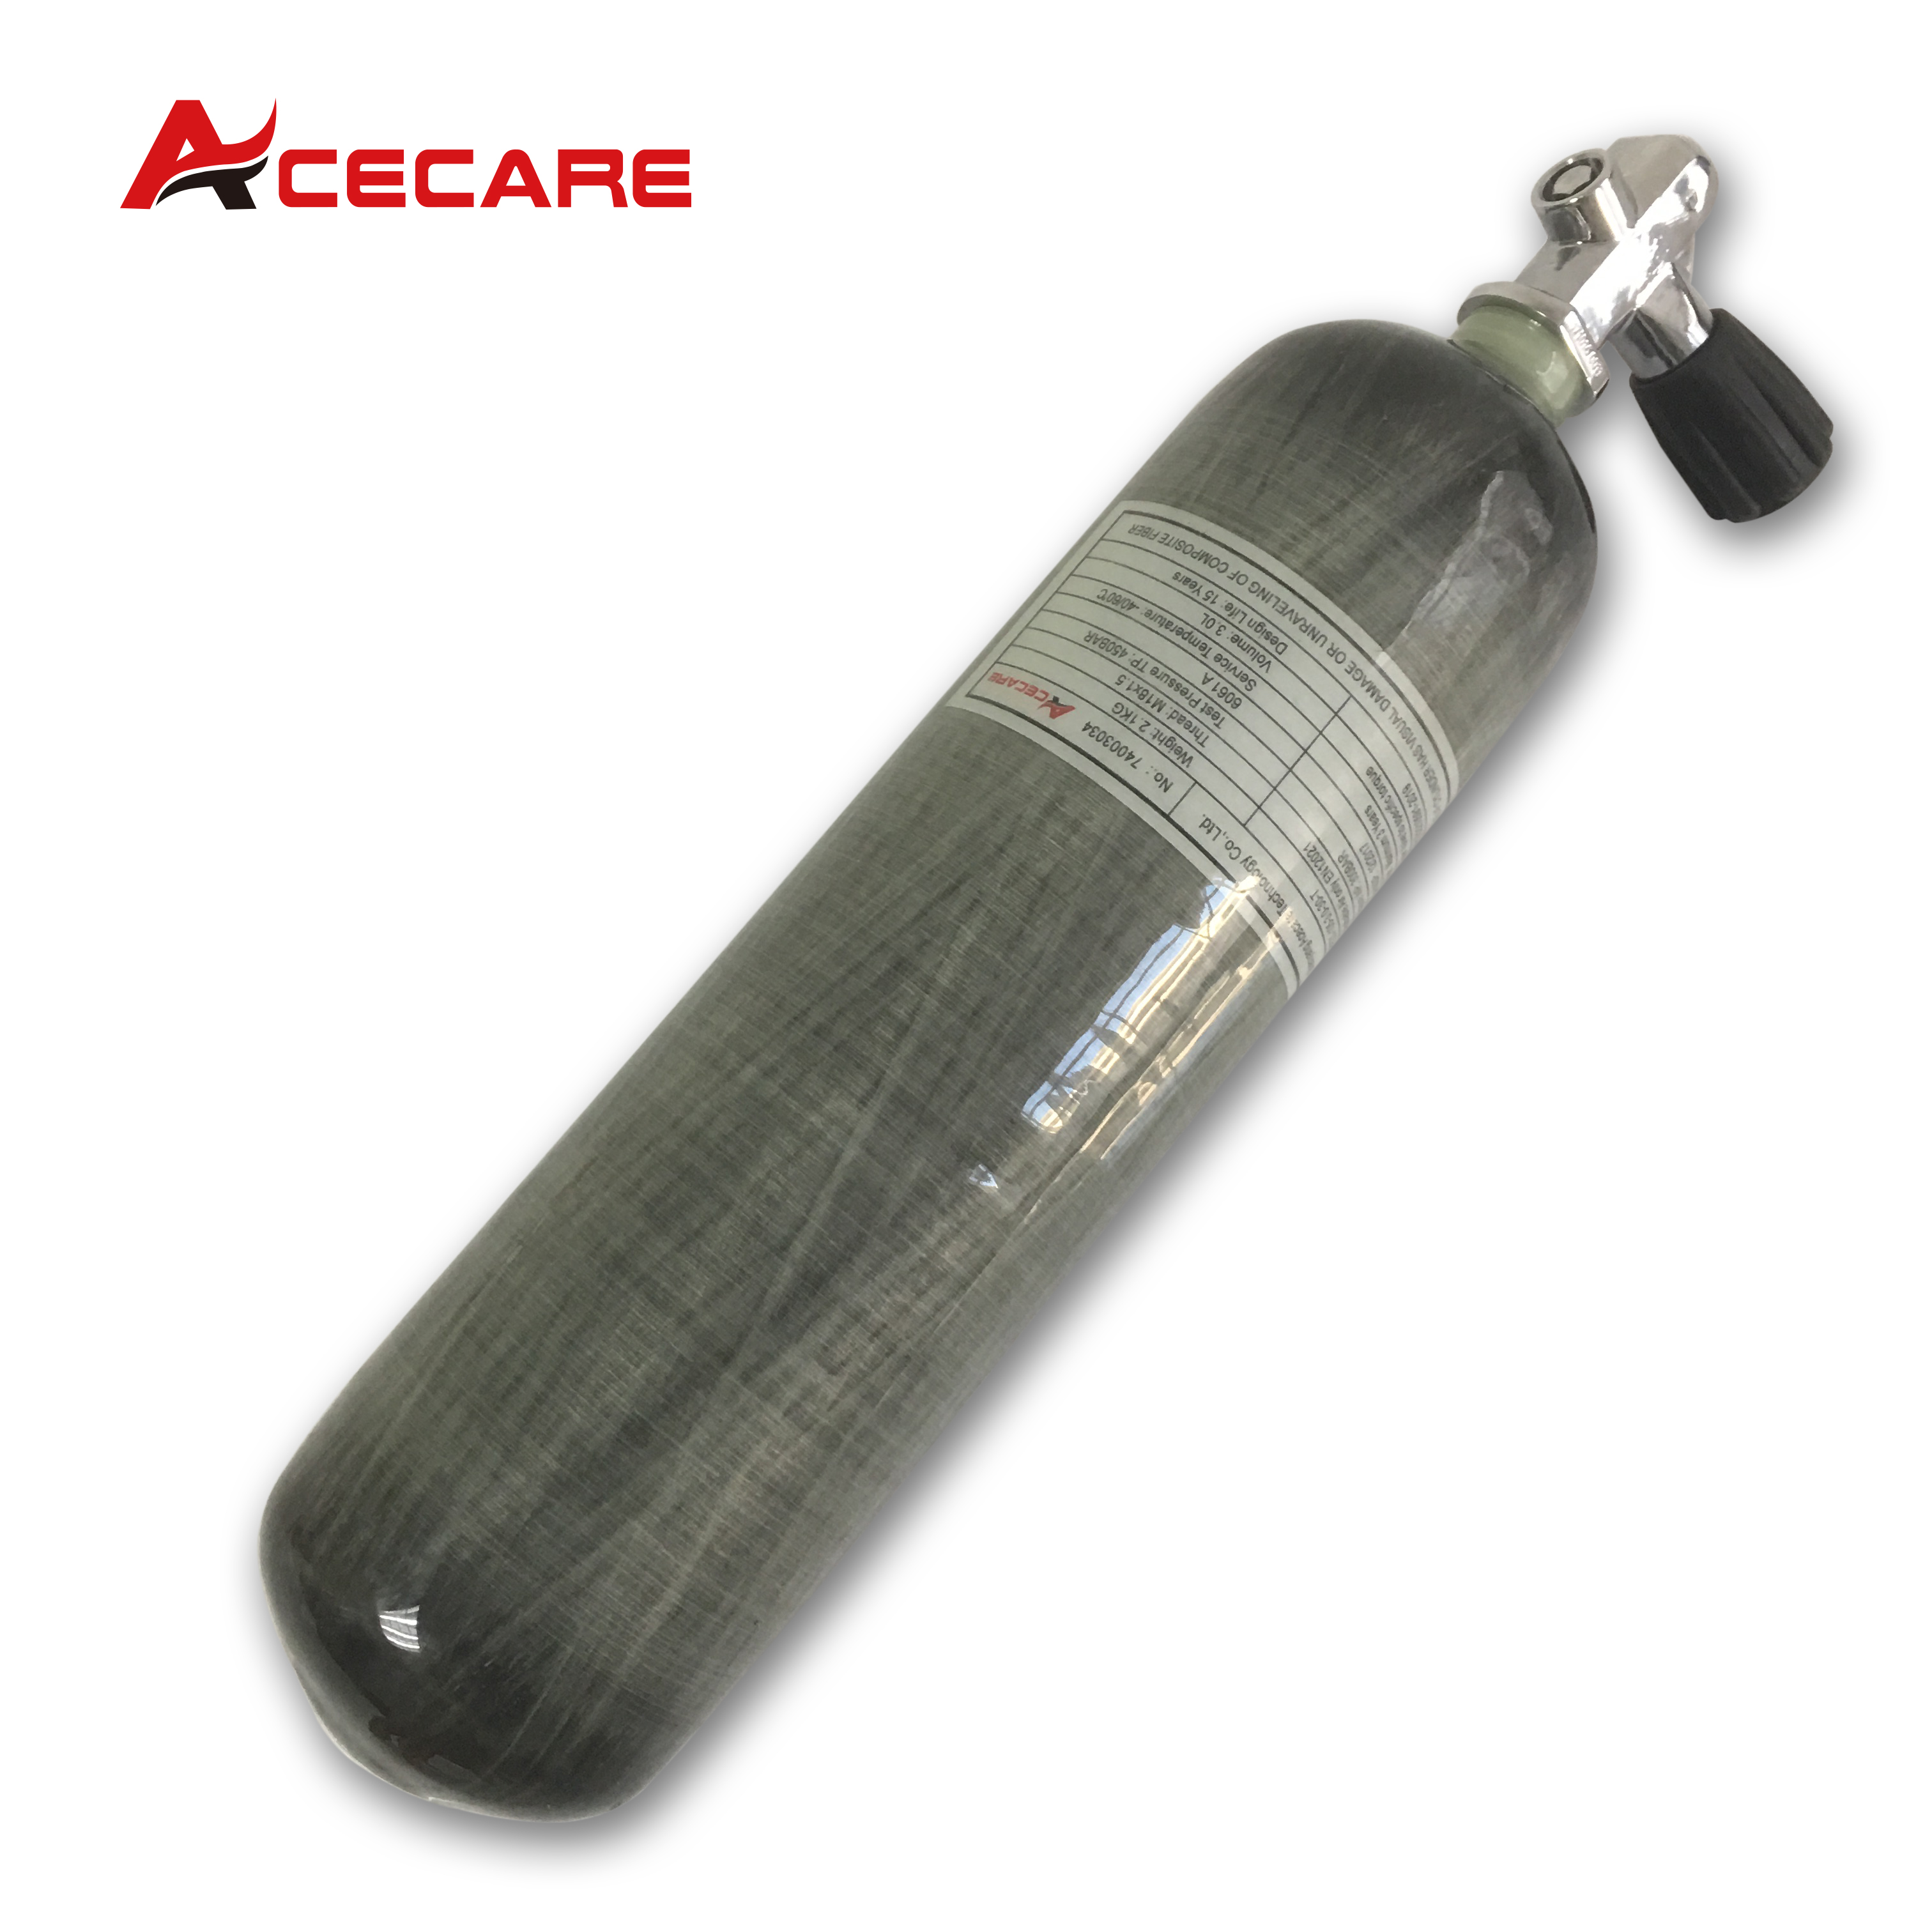 AC10351 Acecare 3L CE 300Bar PCP Paintball Tank Carbon Fiber Cylinder For Shooting/Hunting Airsoft/Air Rifle With Diving Valve